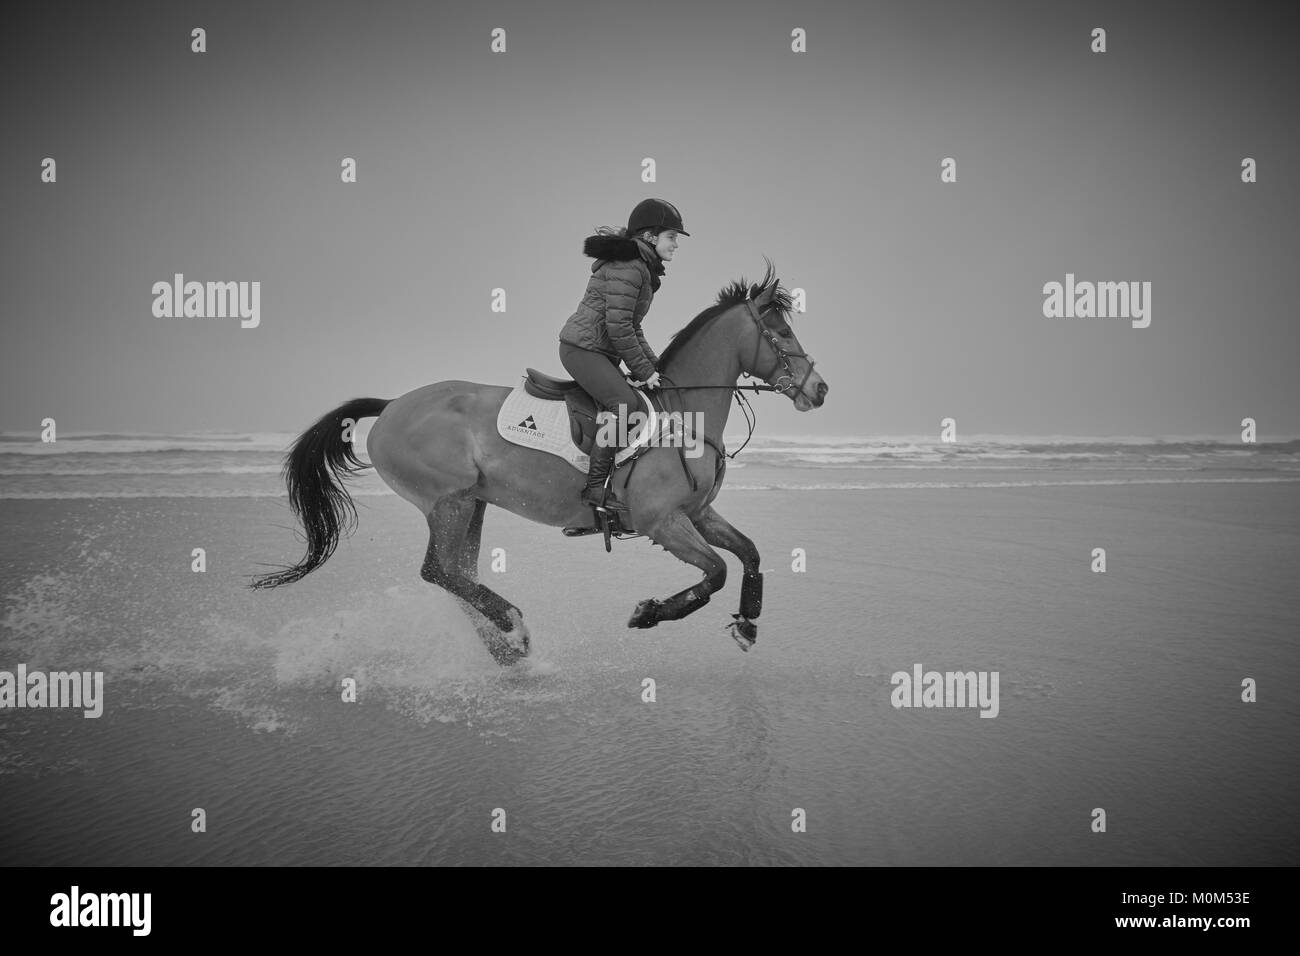 A female horse rider riding from left to right over low tide on a beach captured with some water rising off the - Stock Image